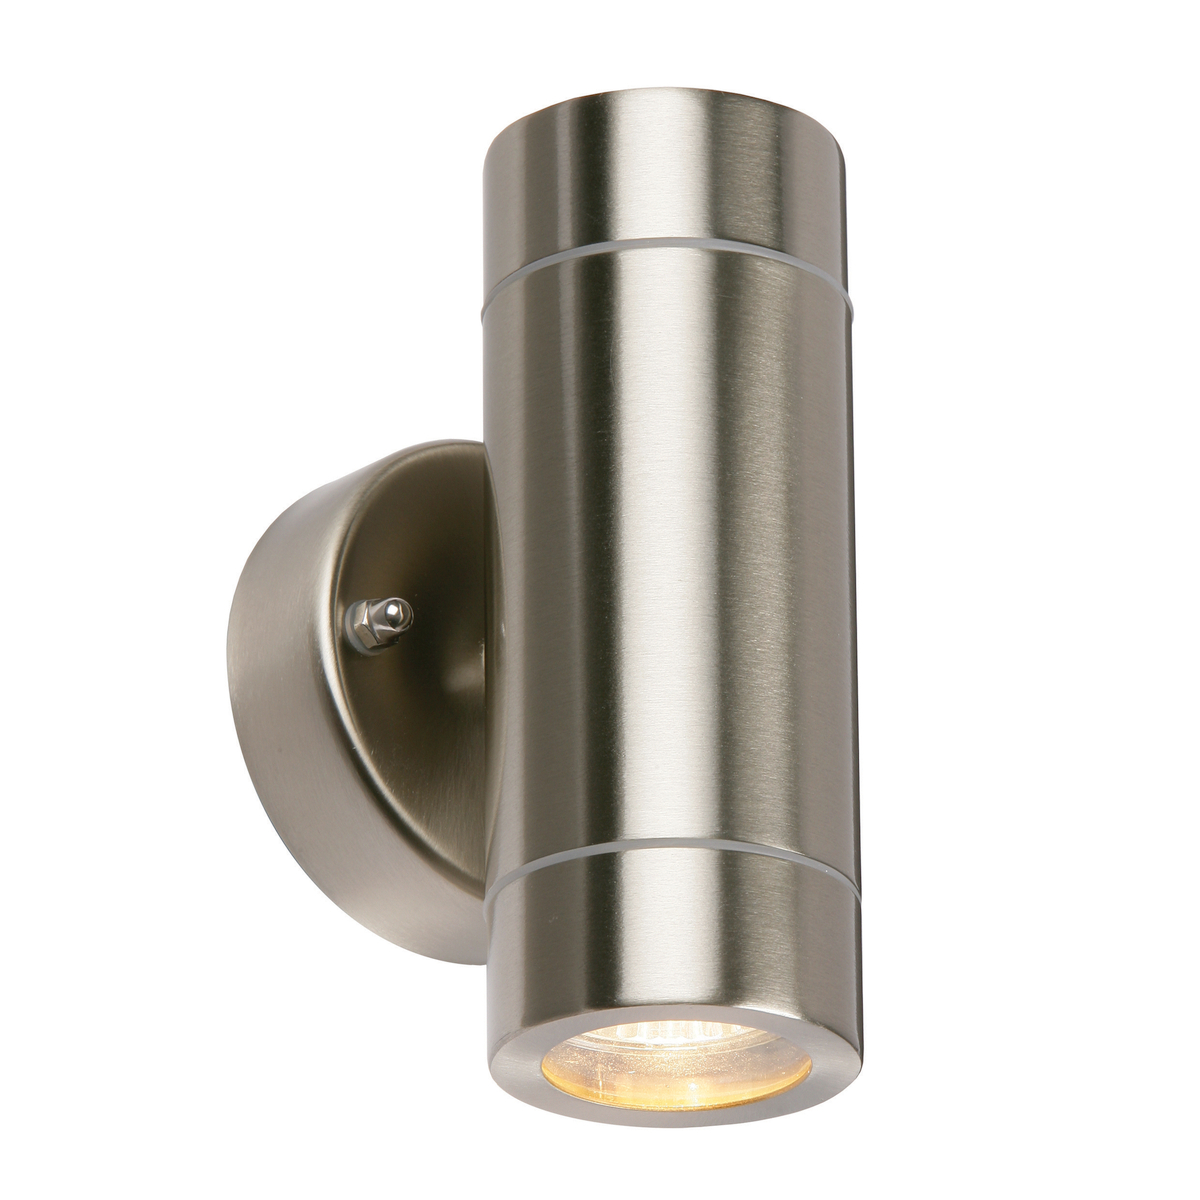 Modern Stainless Steel Up Down Gu10 Led Ip44 Dimmable